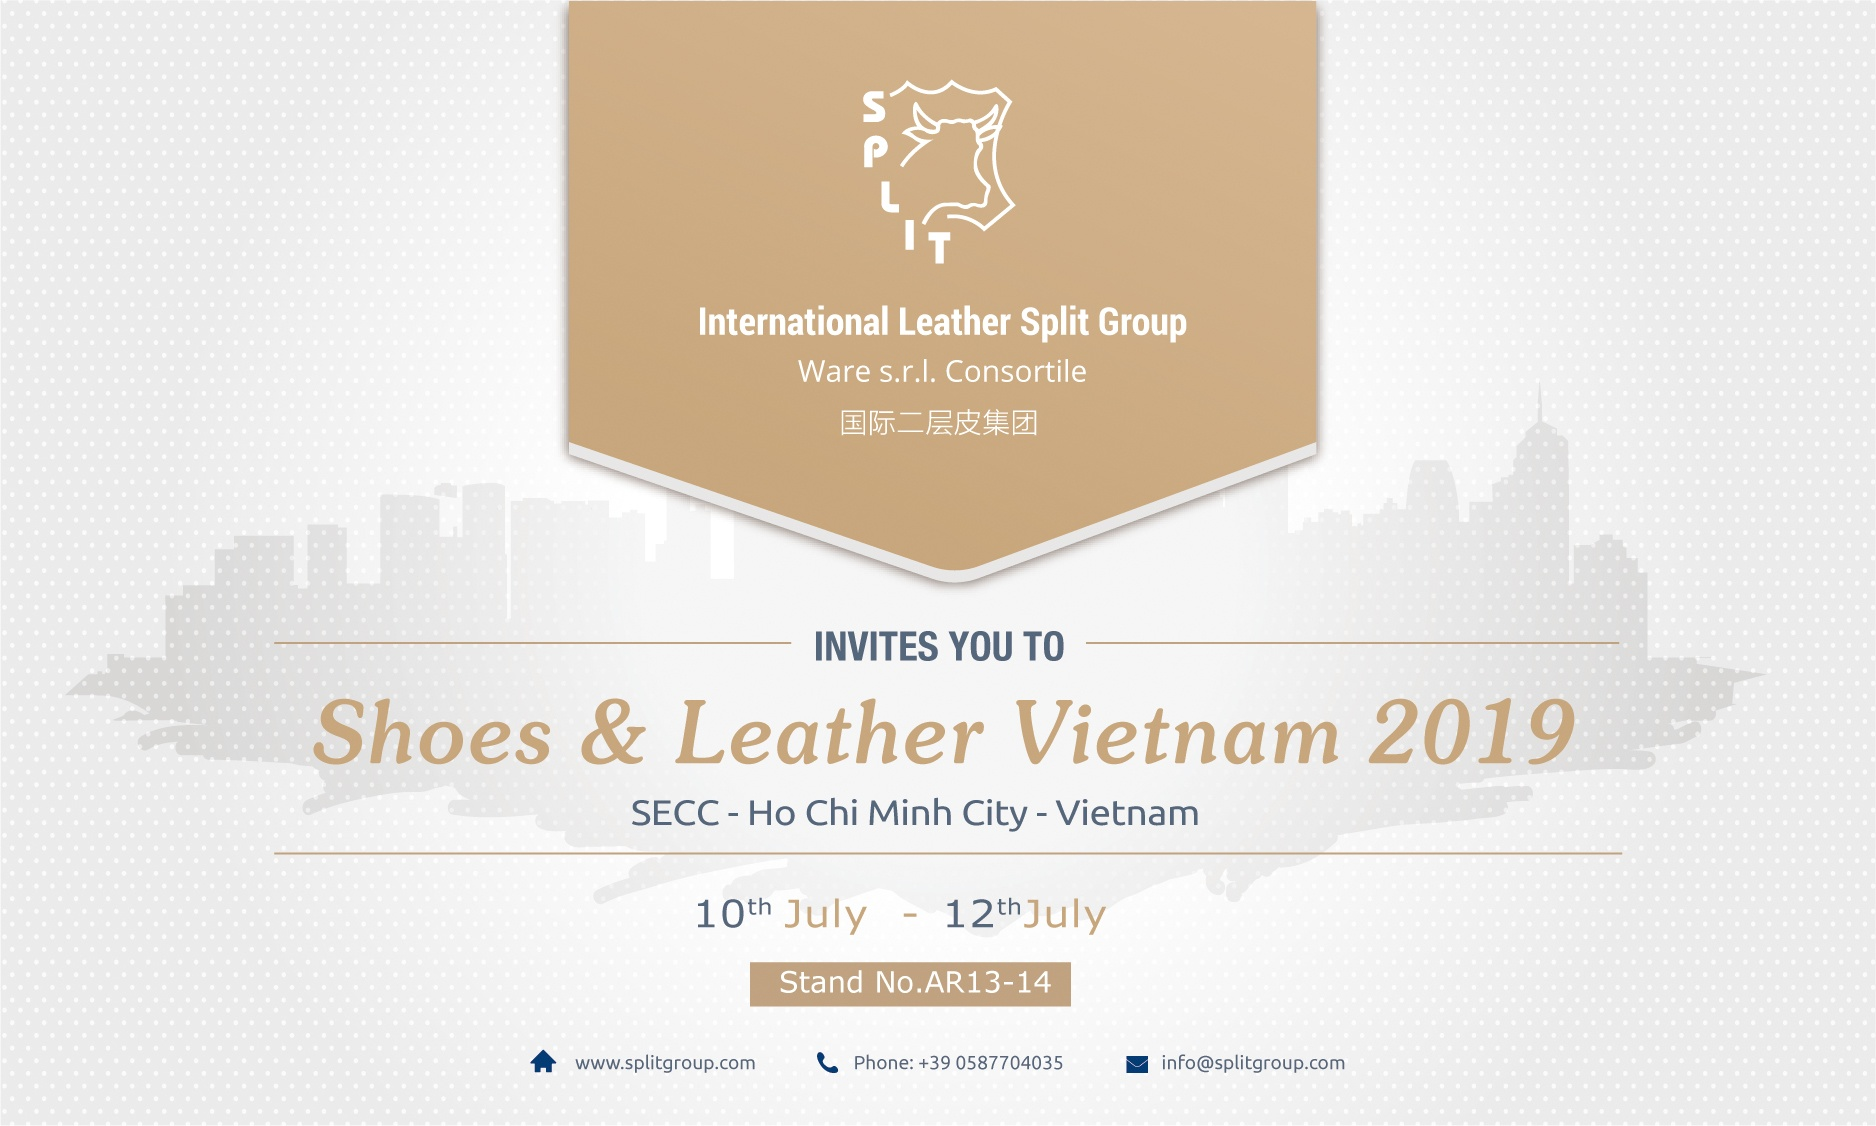 Shoes & Leather Vietnam 2019